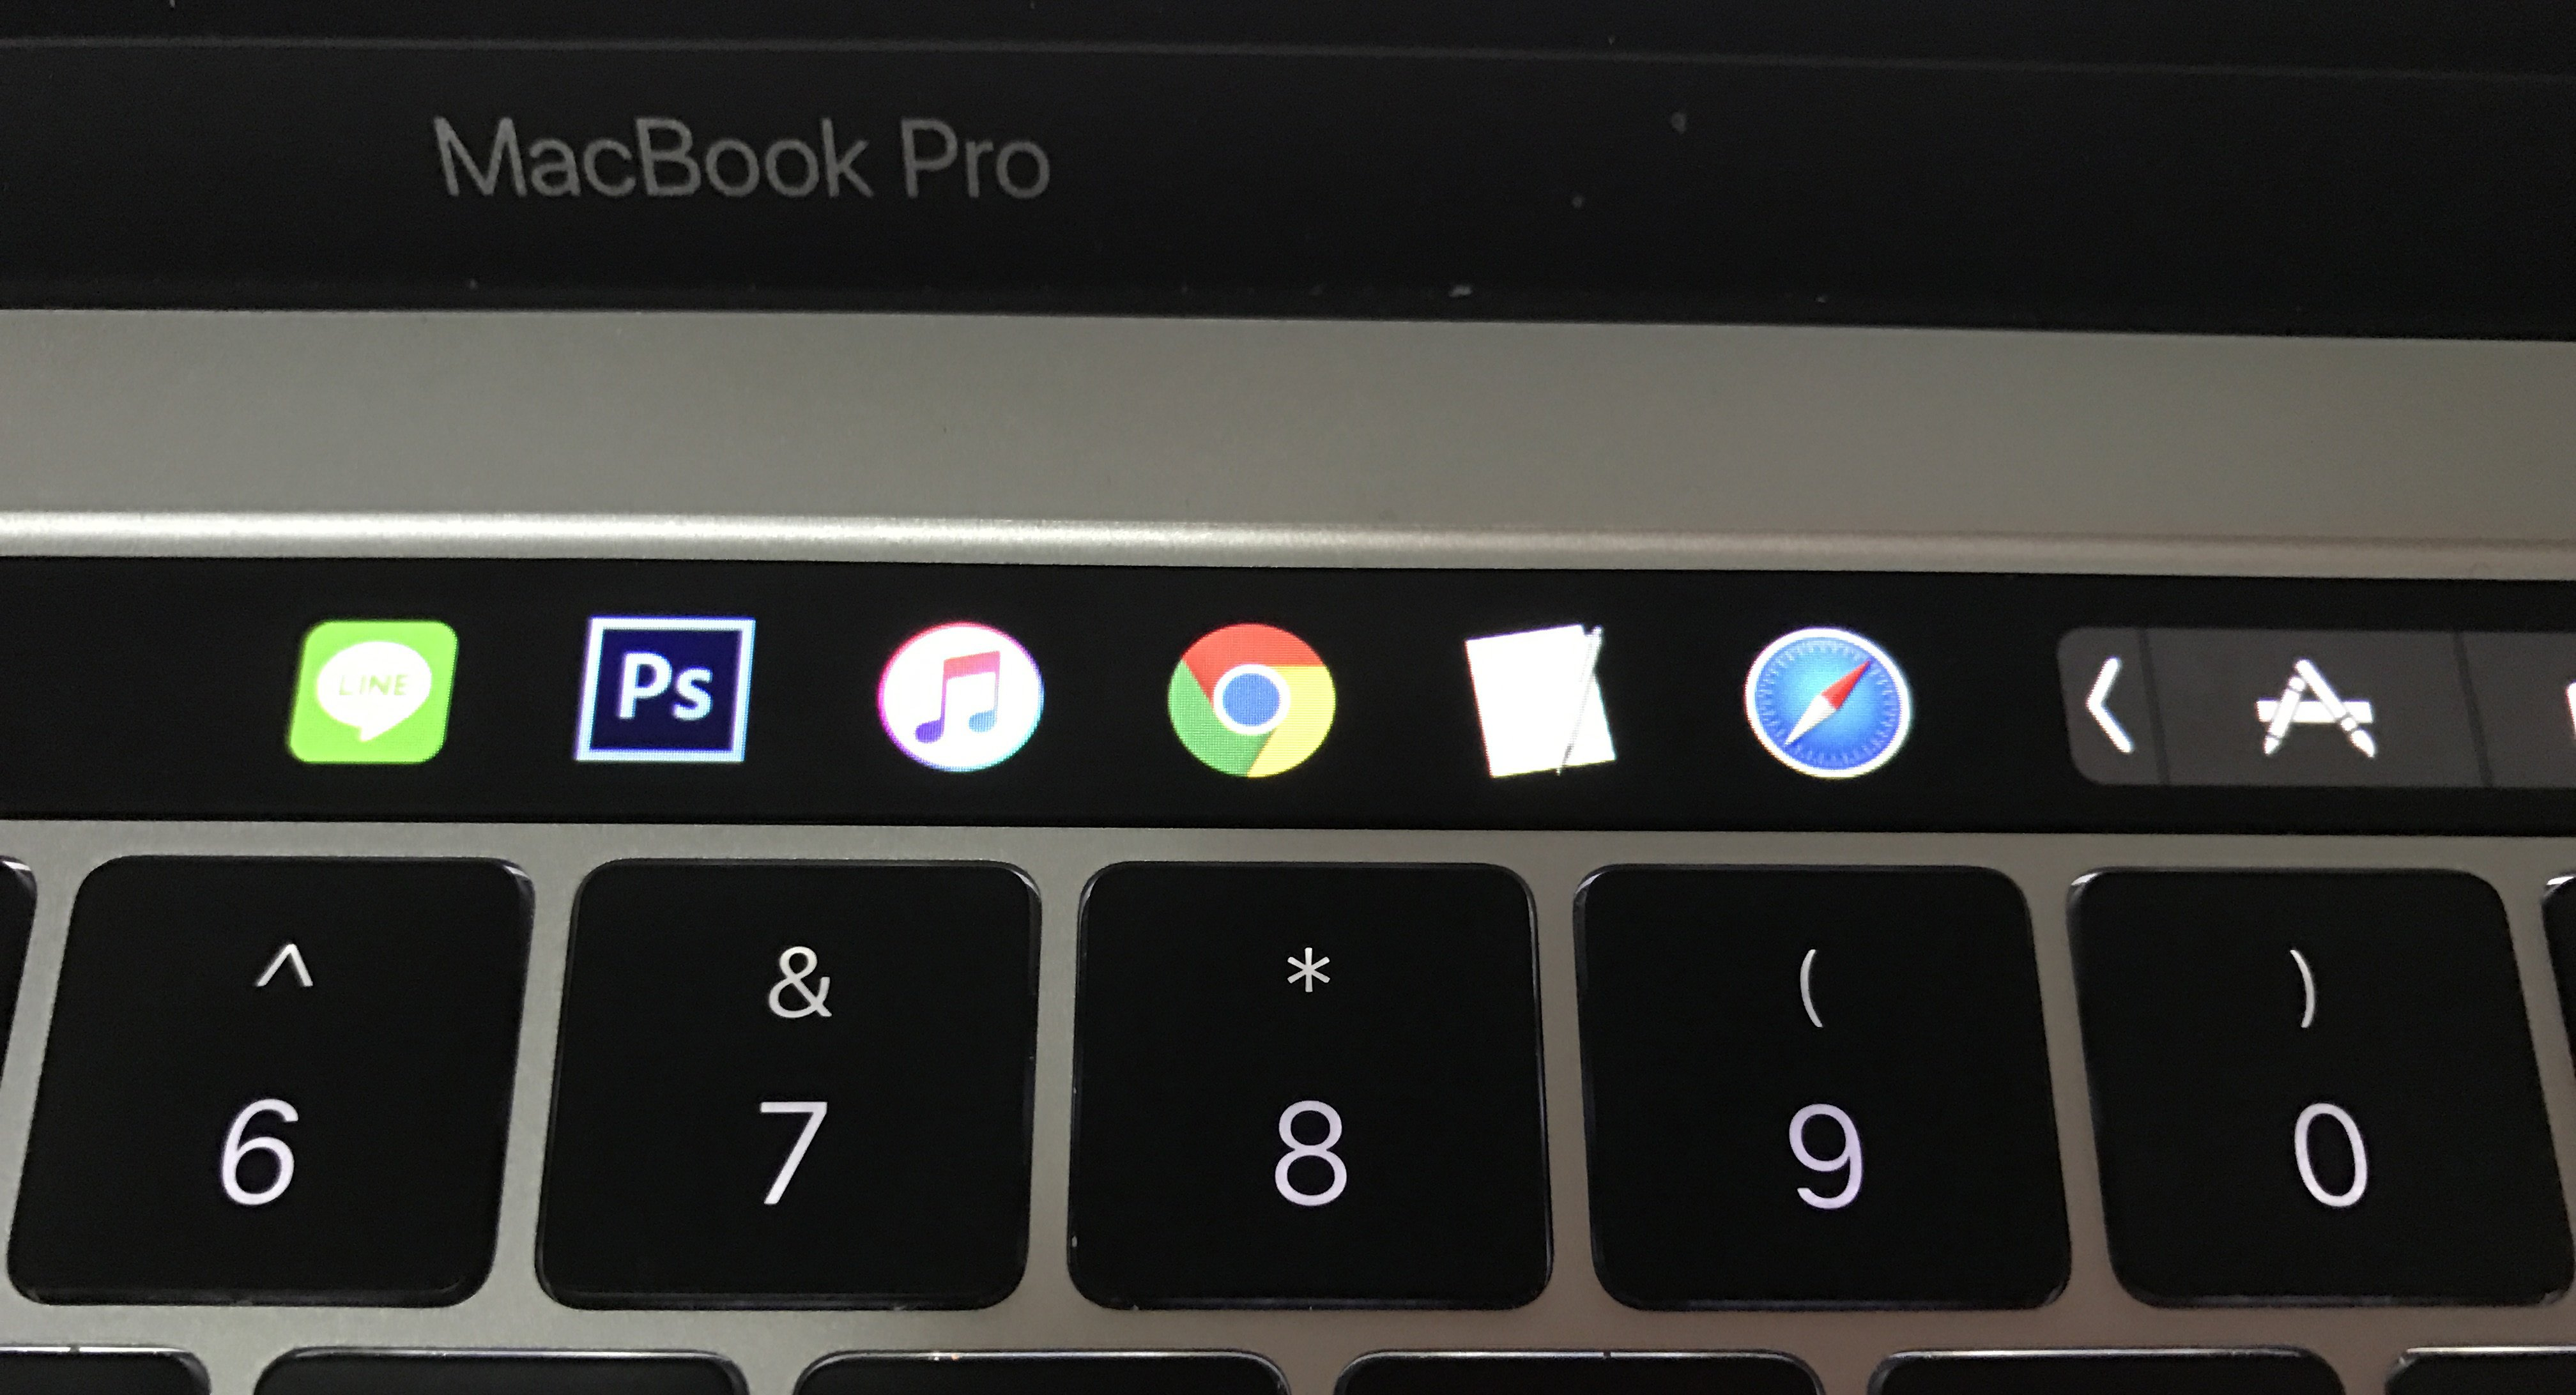 touch-switcher-let-touch-bar-become-app-switcher_02